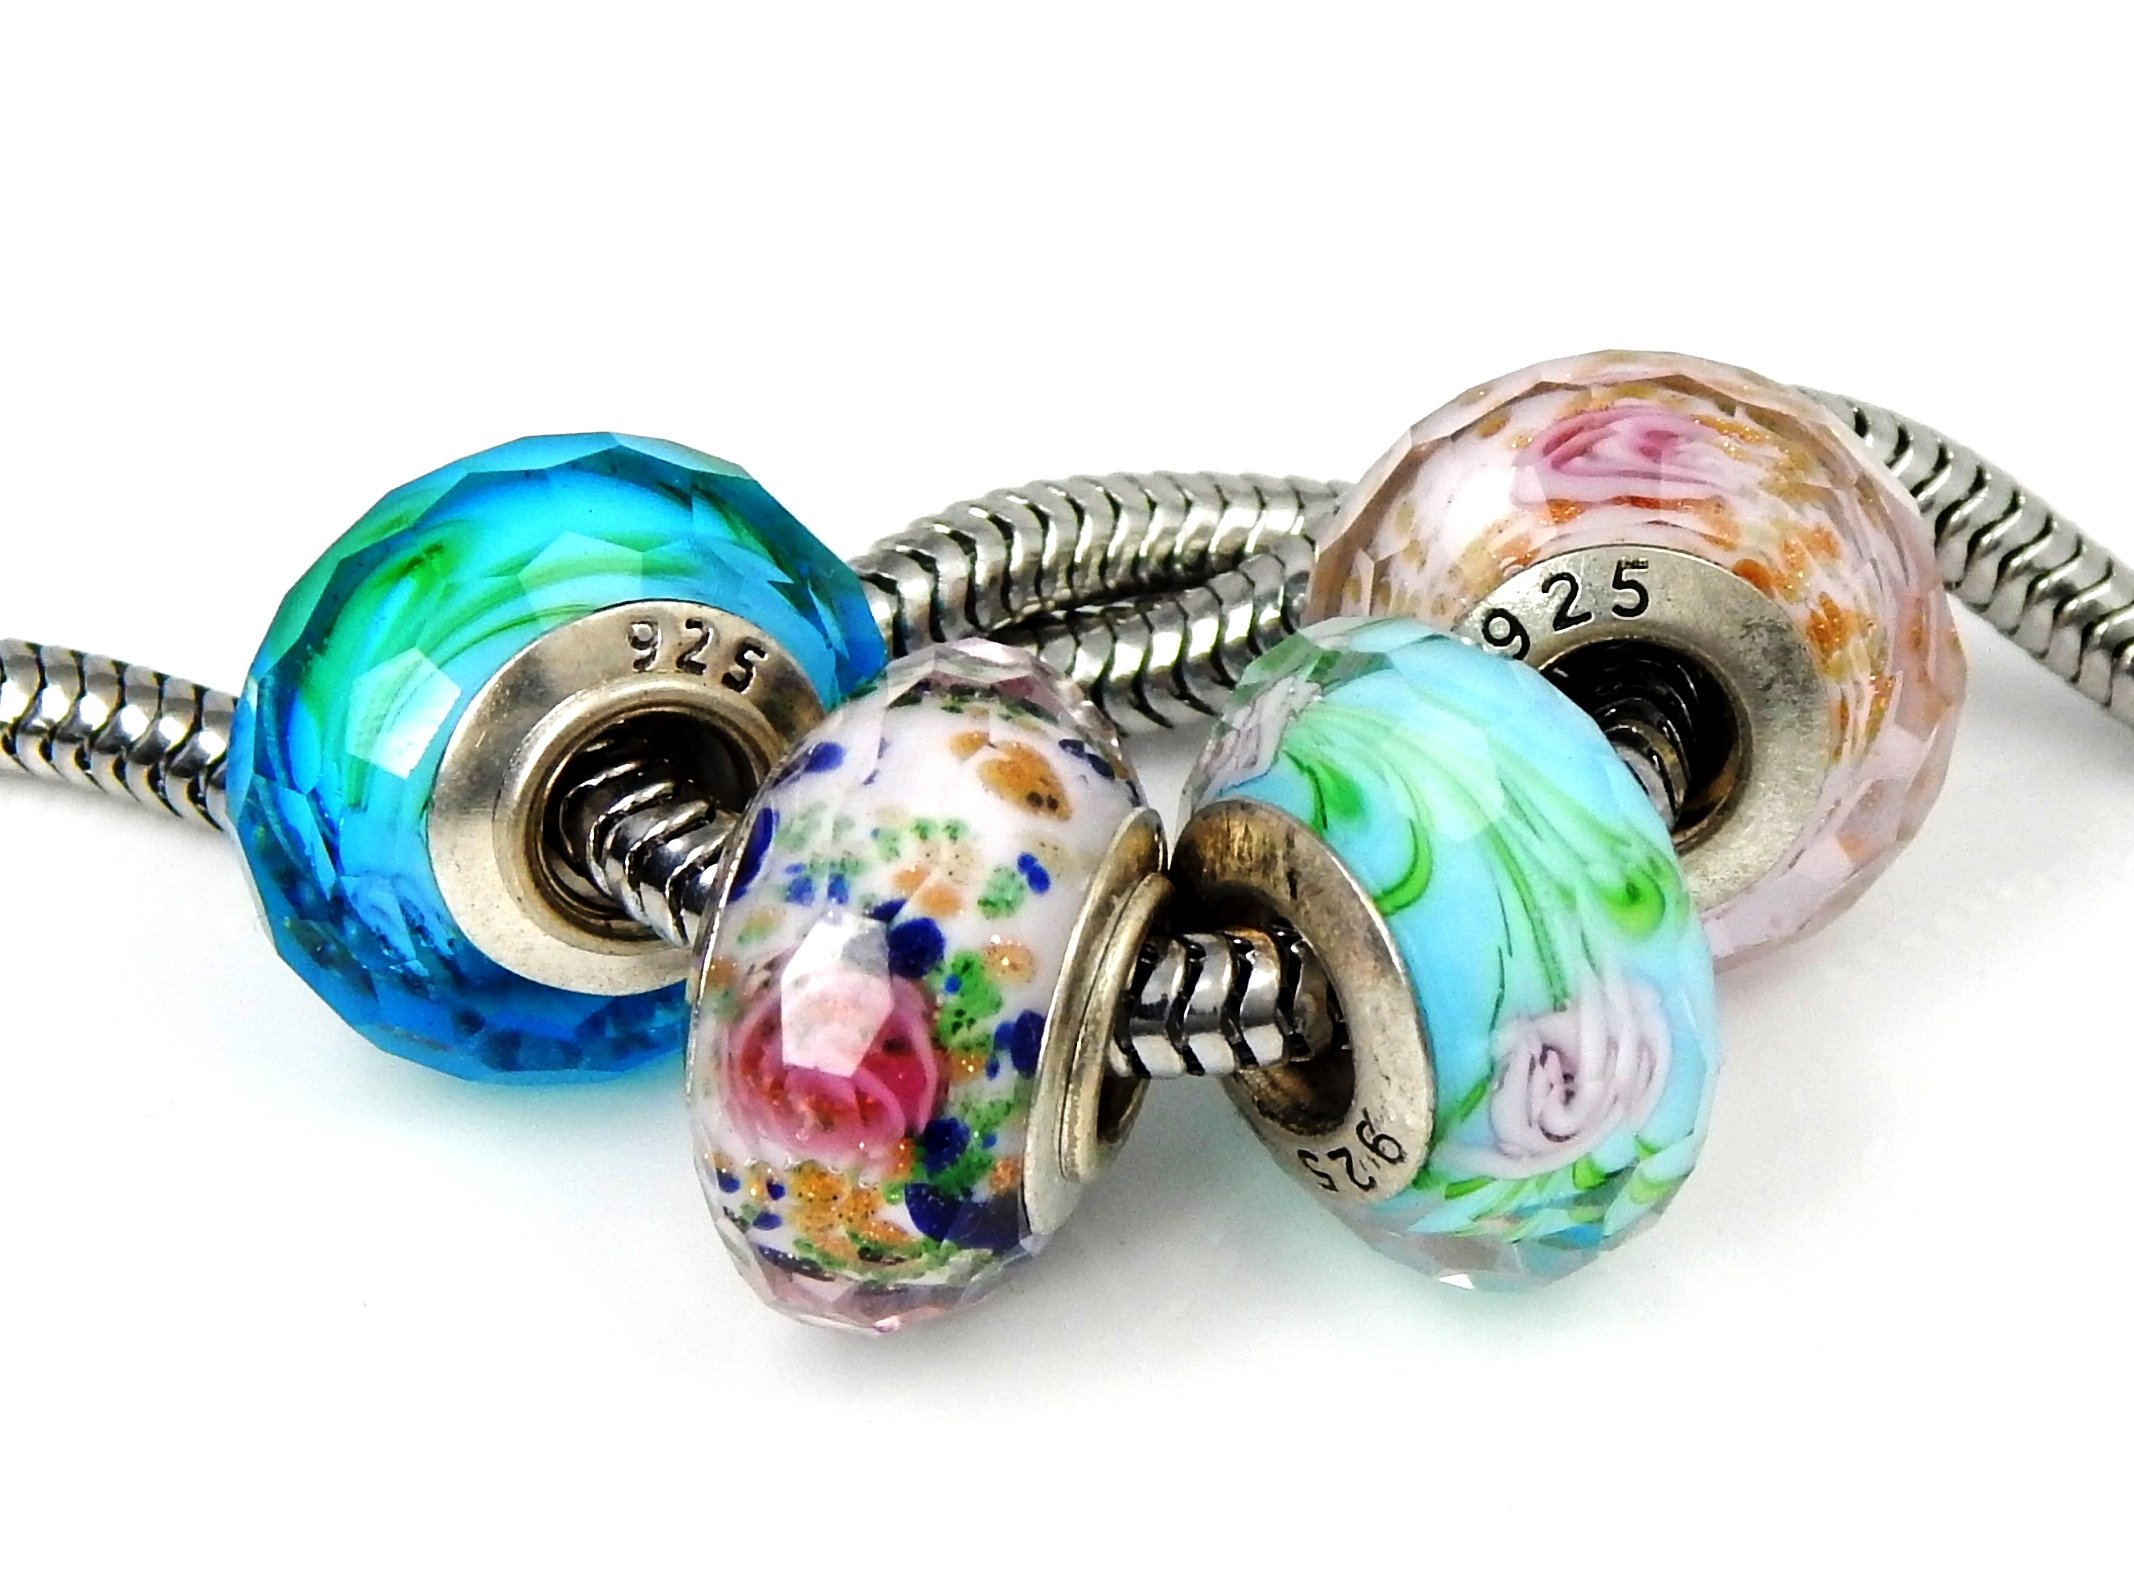 J&M Set of 4 Handmade Faceted Murano Glass Charm Bead with Roses for Charms Bracelets